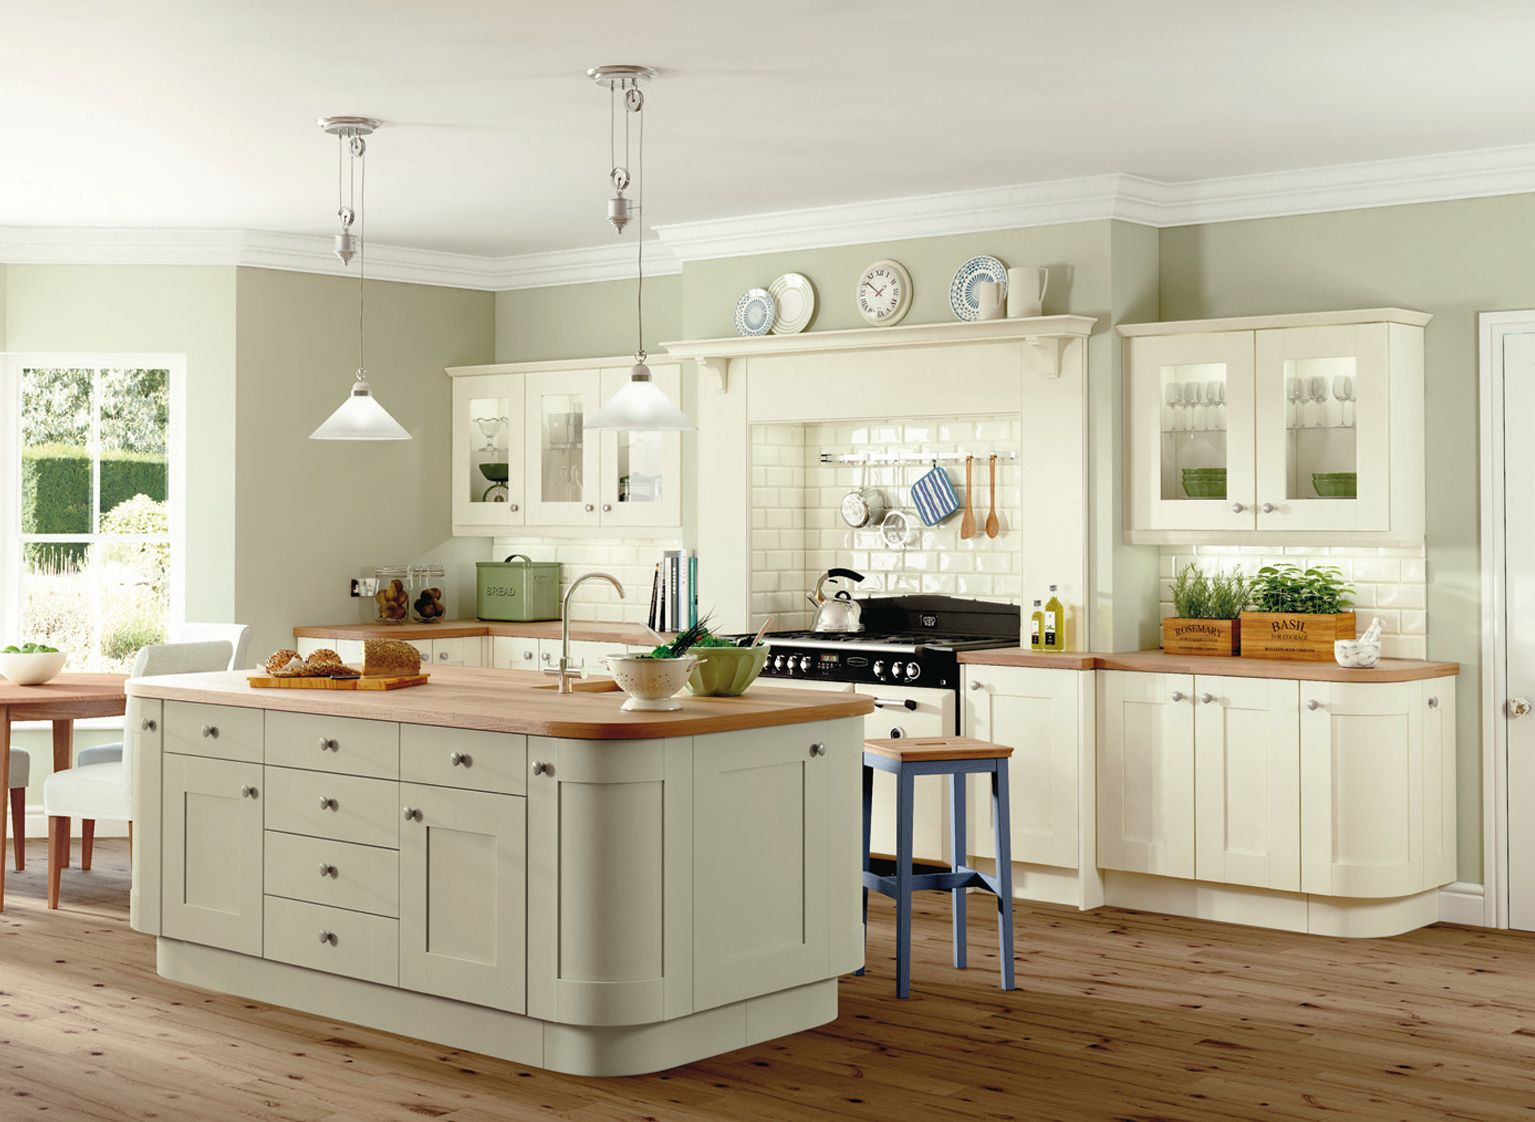 Colour For Kitchens 17 Best Ideas About Sage Green Kitchen On Pinterest Sage Kitchen